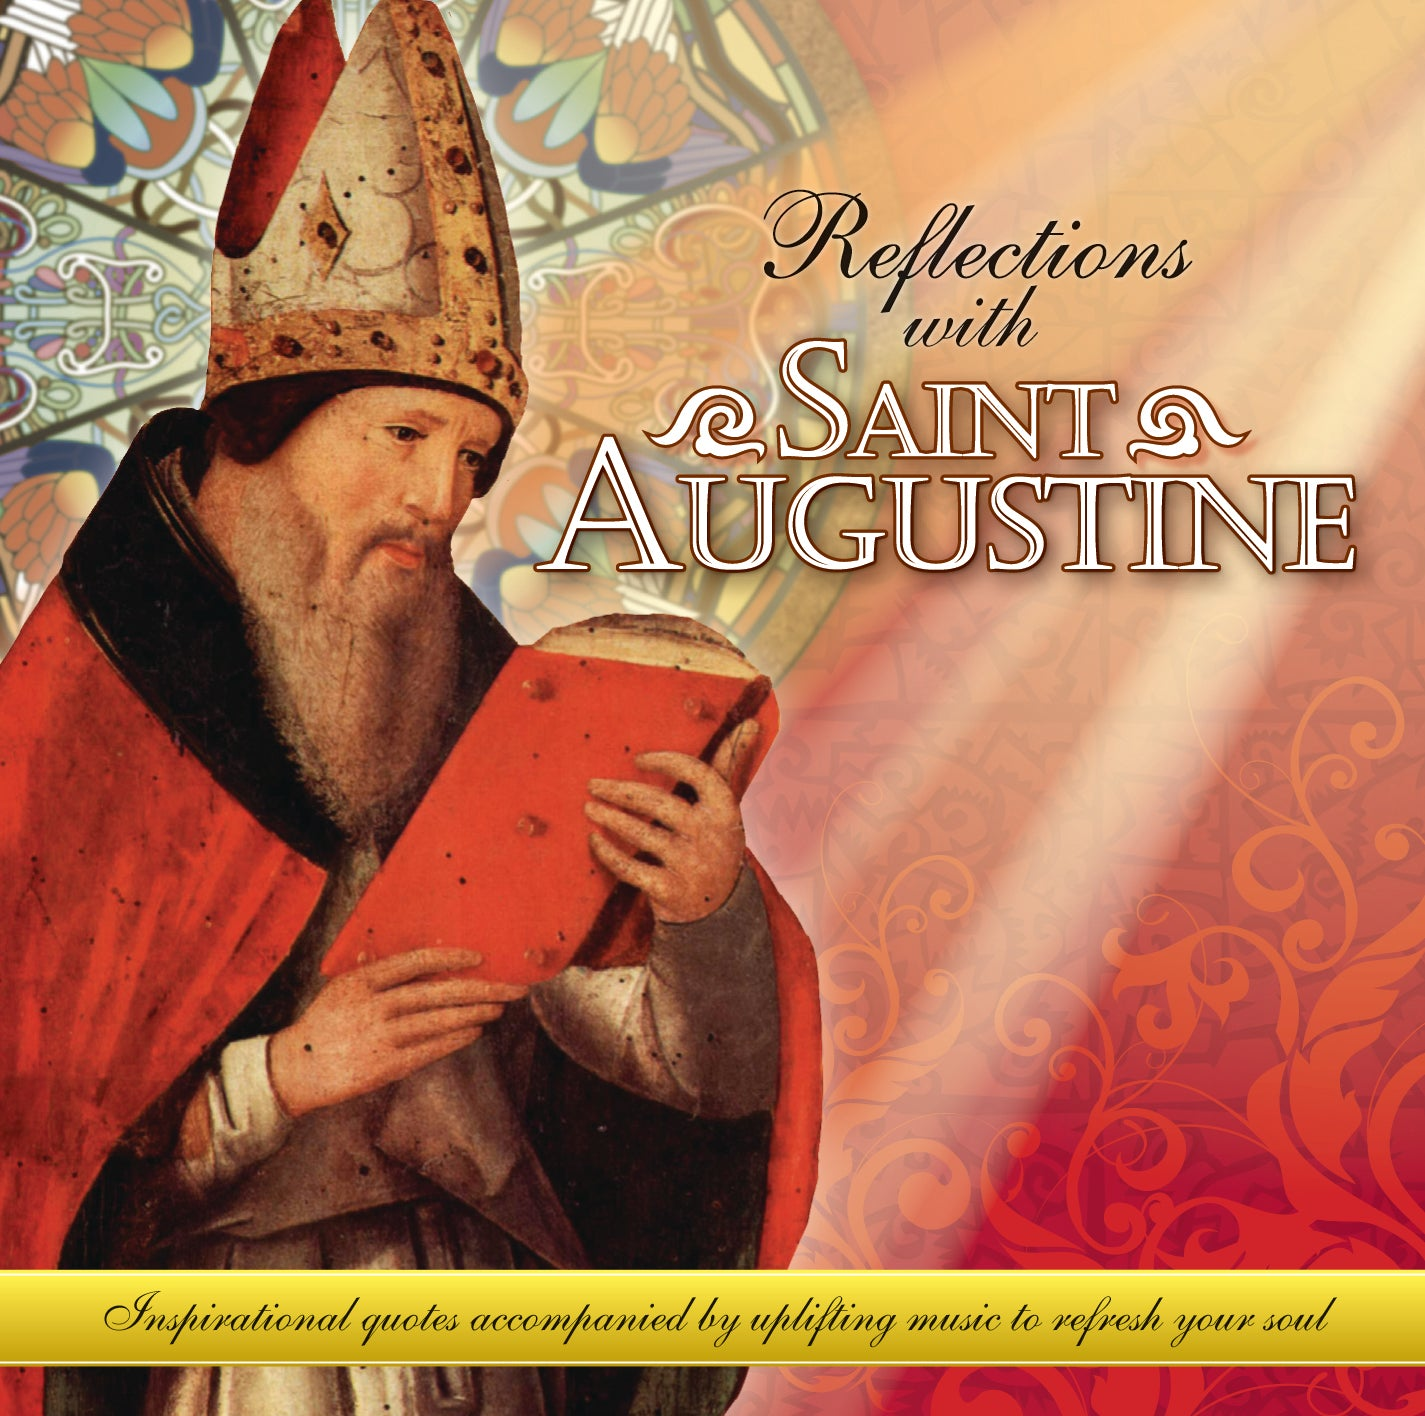 Reflections with Saint Augustine - meditations and music